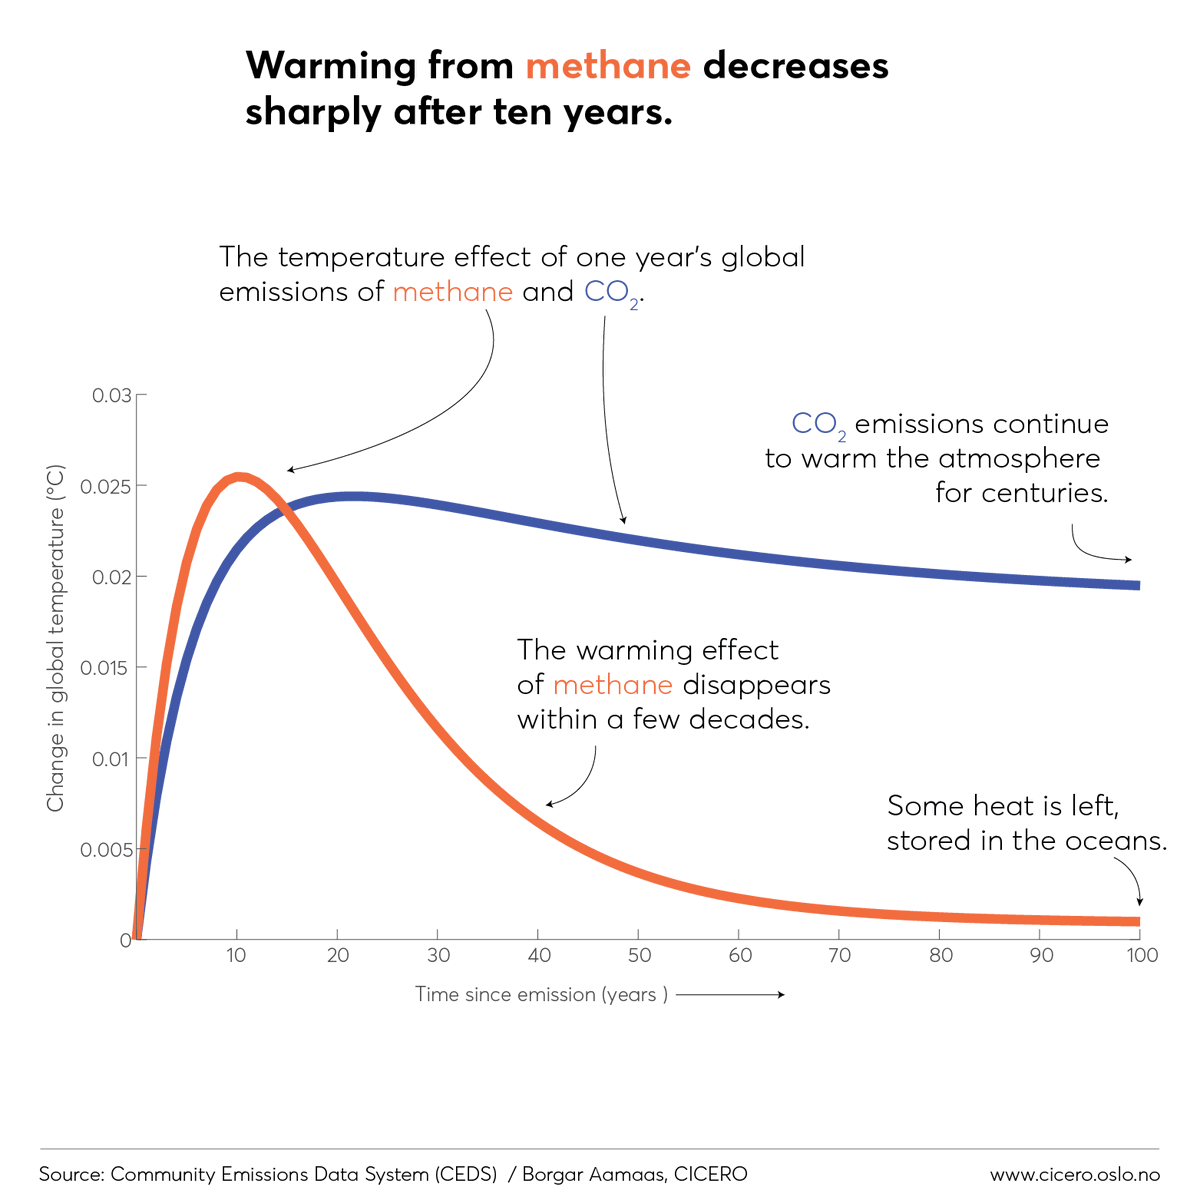 This means that the warming effect of methane, while much larger than CO2, is also much shorter lived. This makes comparing them difficult, as methane matters more in the short term and CO2 more in the long term. 14/